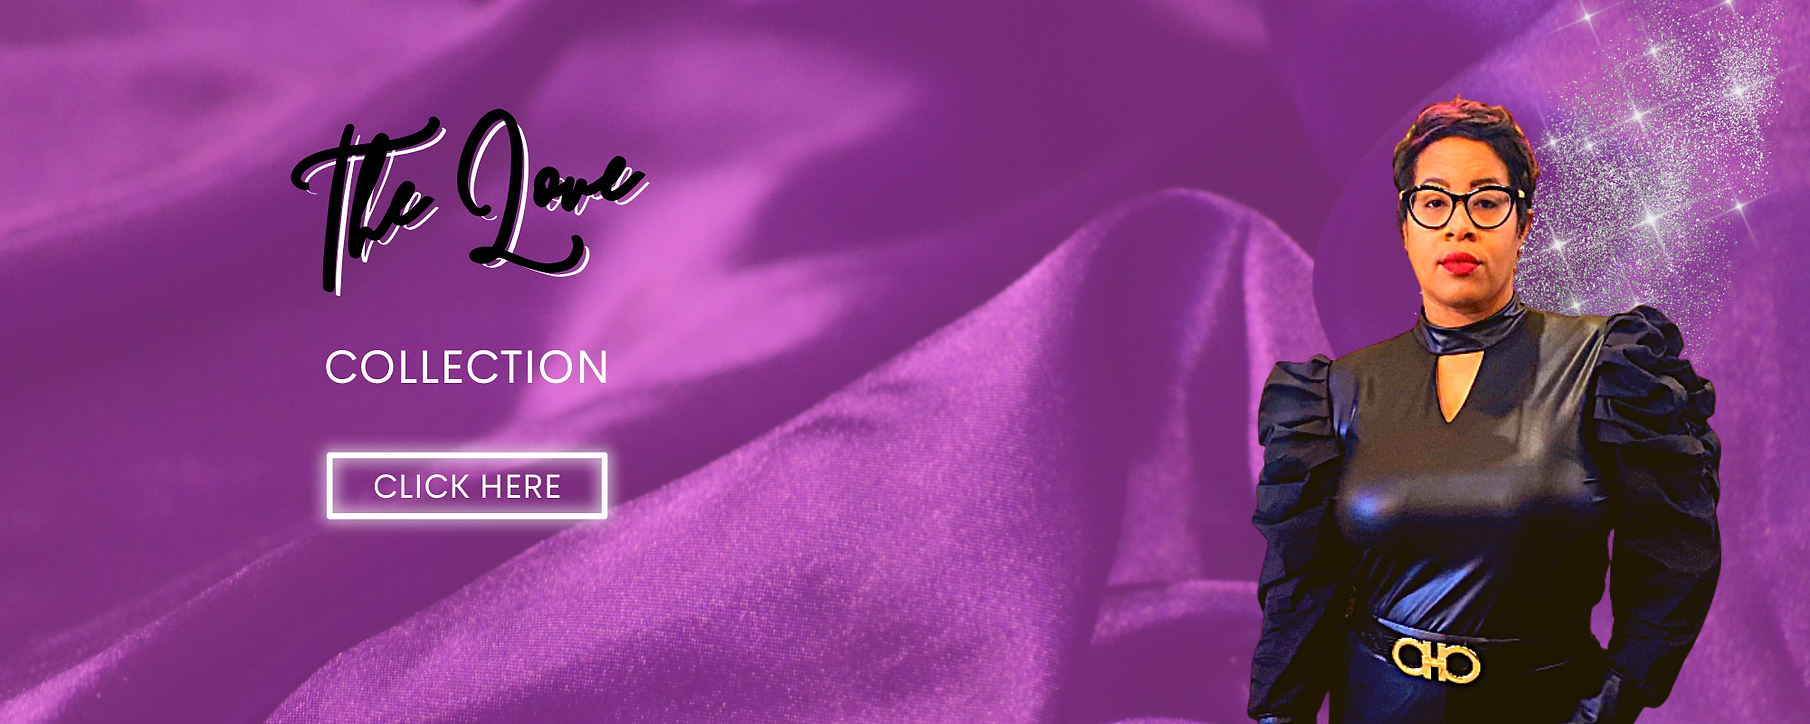 Copy of Rose Pink and Gold 1.0 - Banners  (3).png